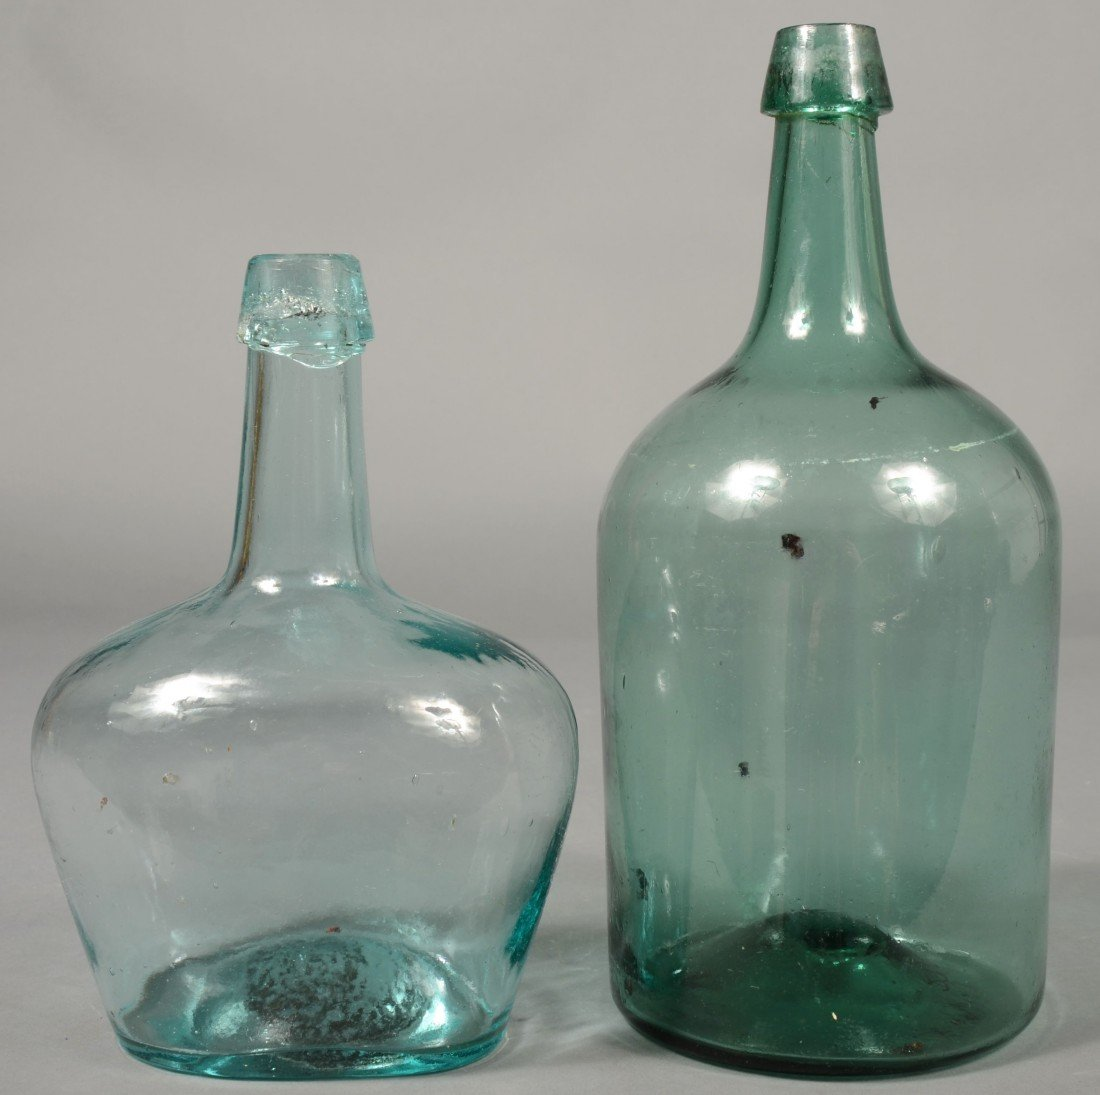 225: Two Aquamarine Blown Glass Wine Bottles. 1st is a